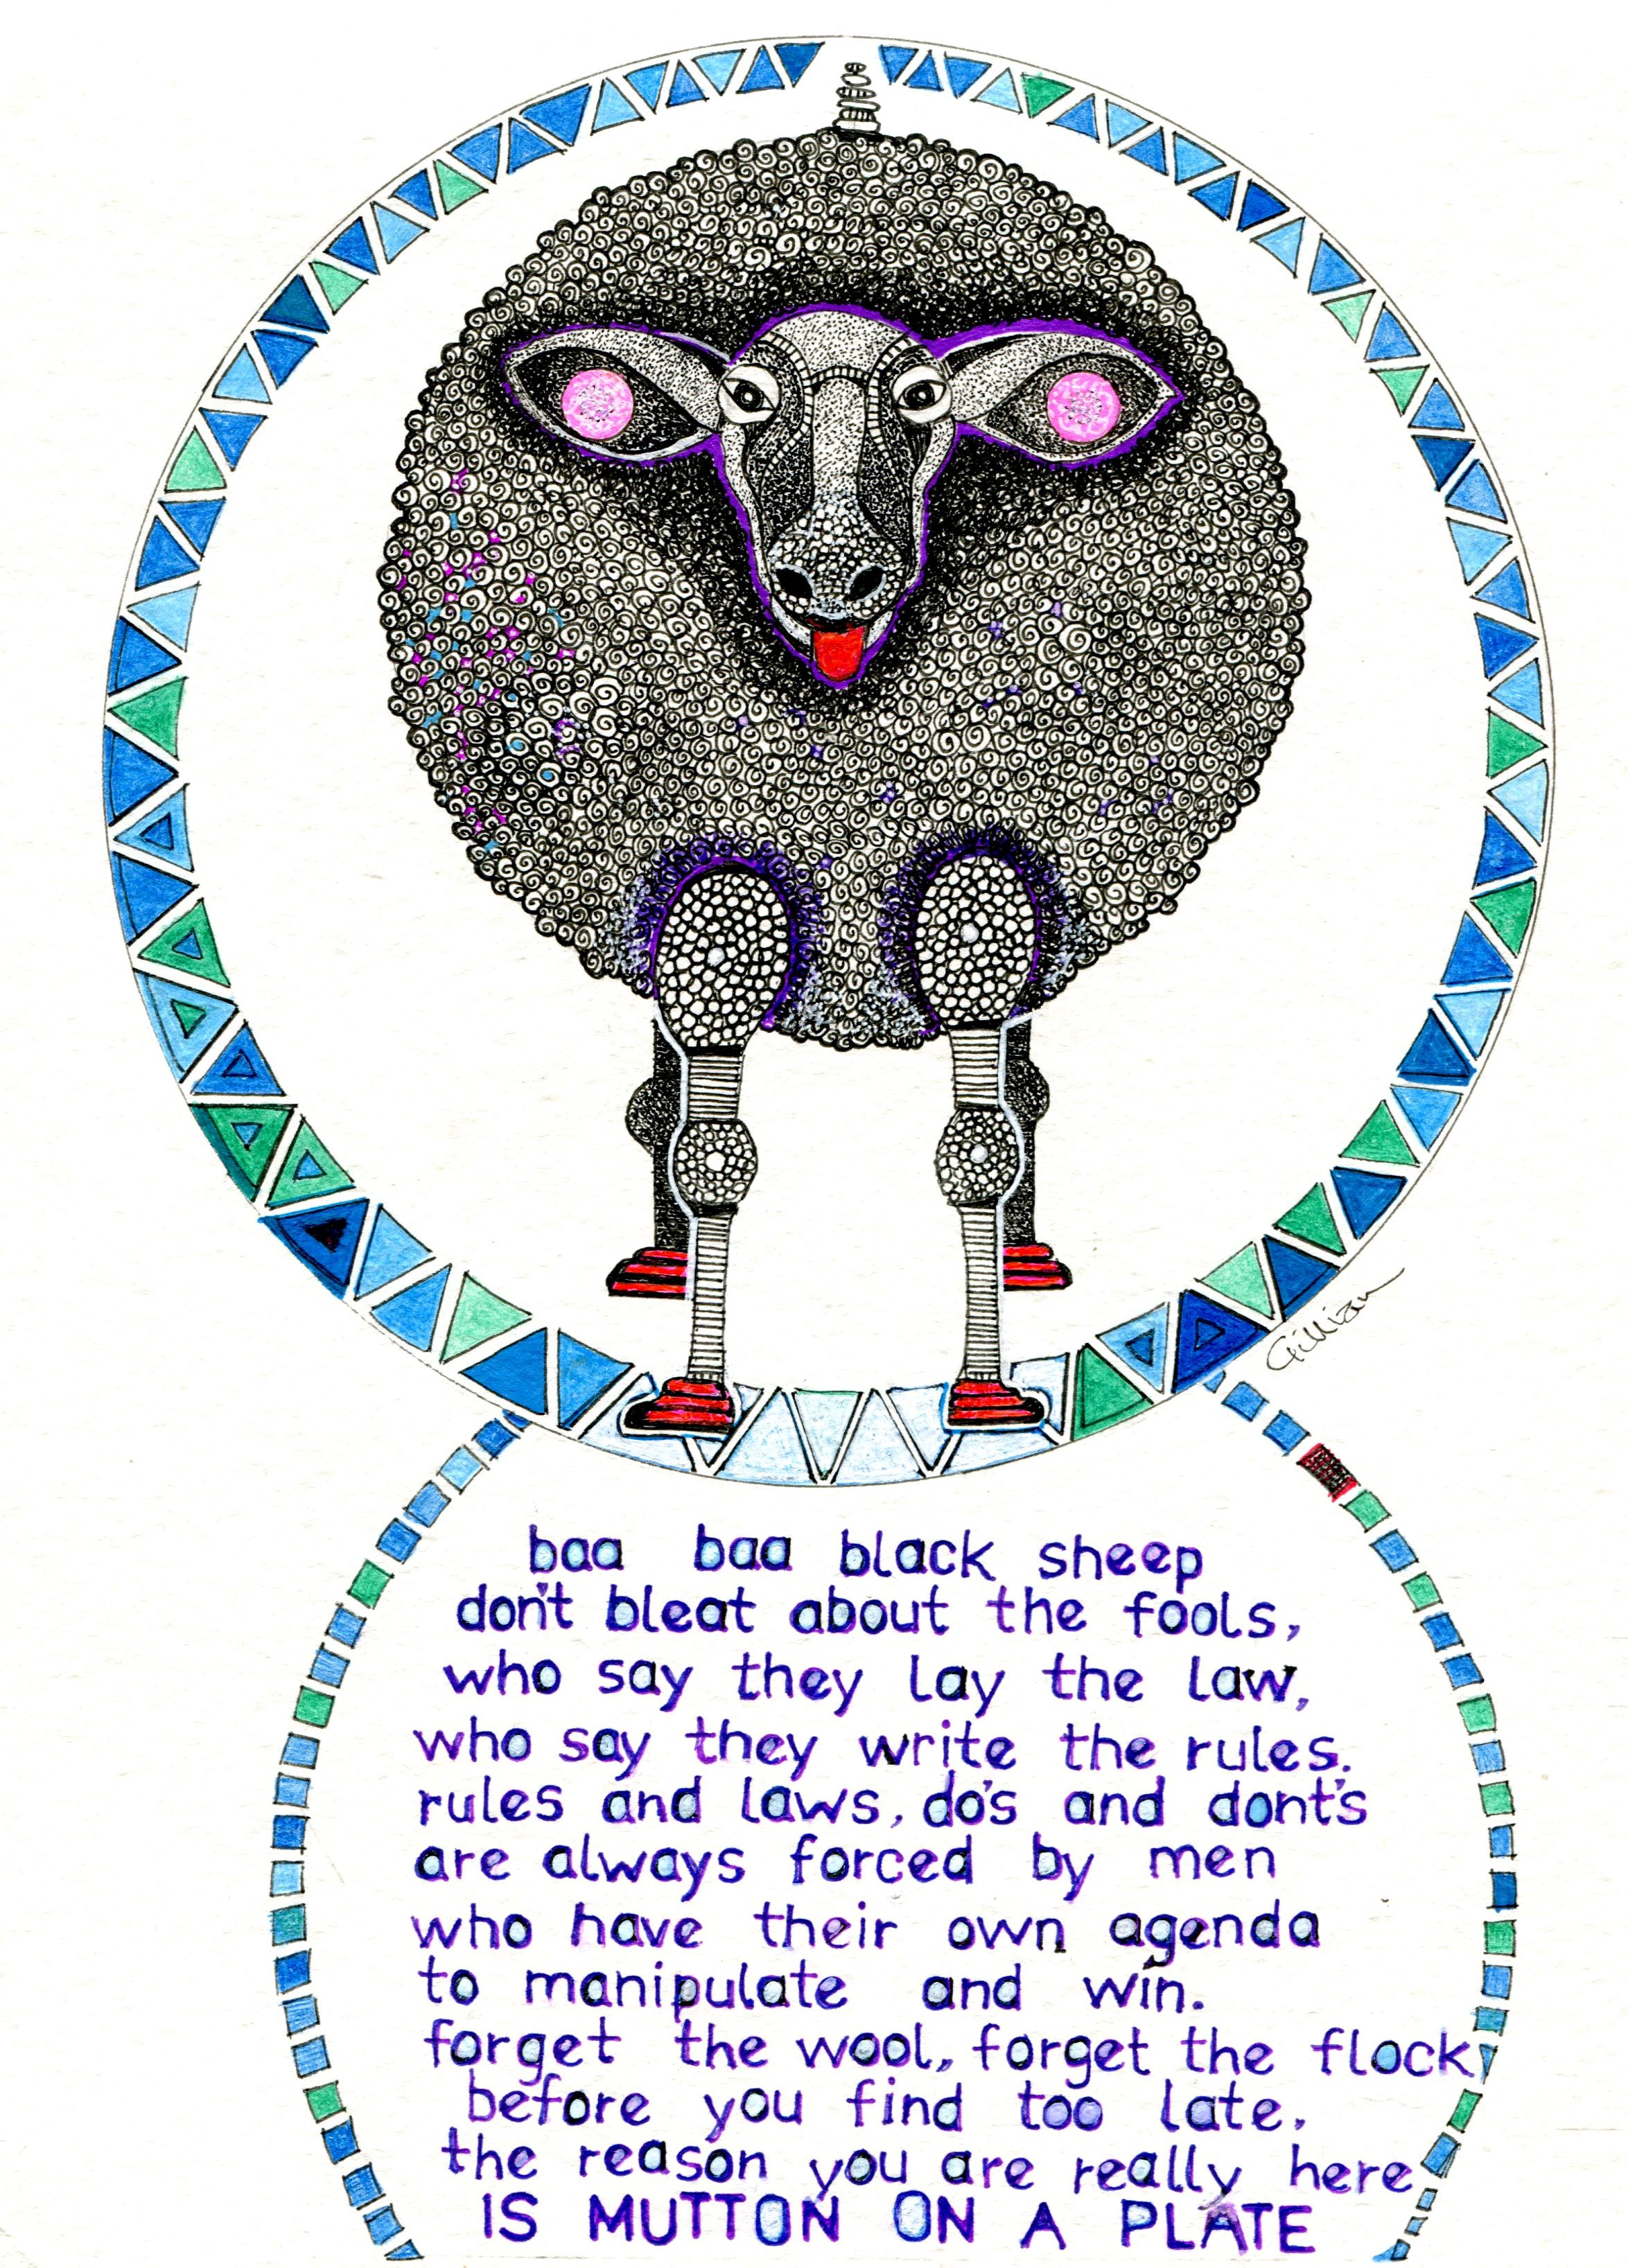 5A GILLIAN GERHARDT, BAA BAA BLACK SHEEP, PEN & INK ON PAPER